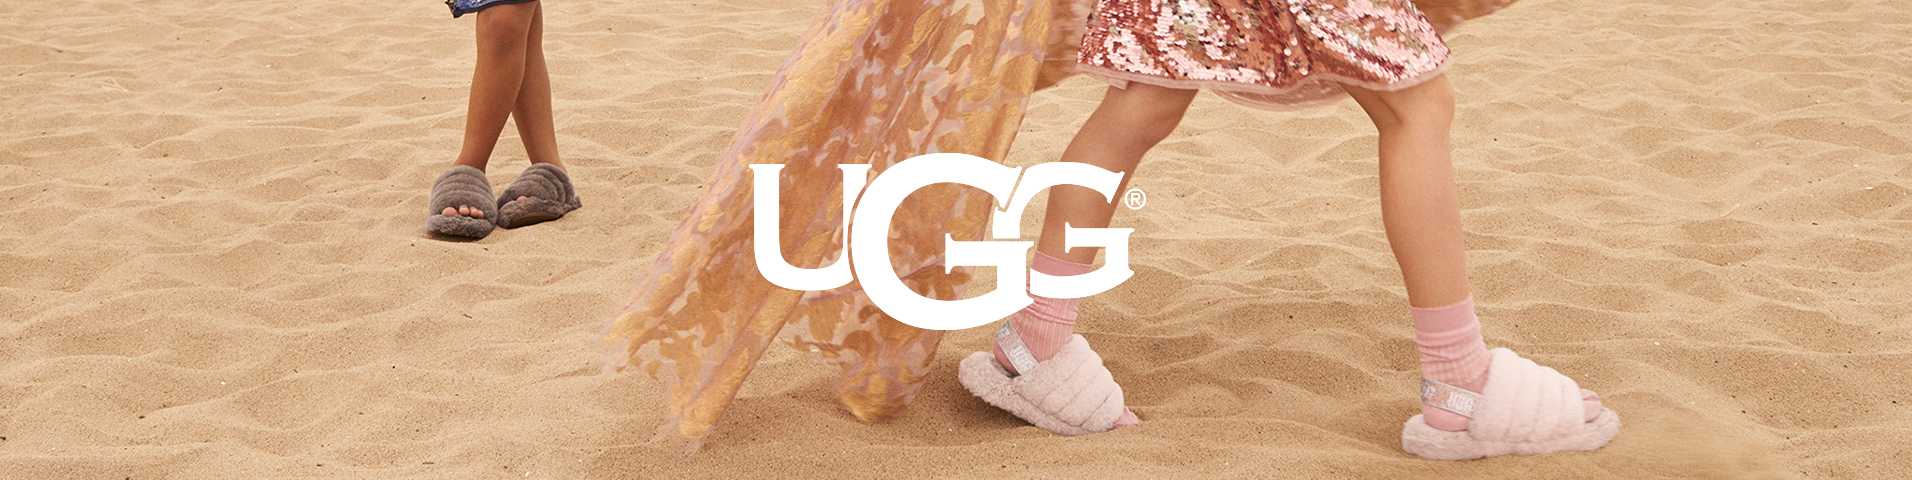 e0ddfcef12c UGG Kids' Shoes | Girls, Boys & Baby Shoes | ZALANDO